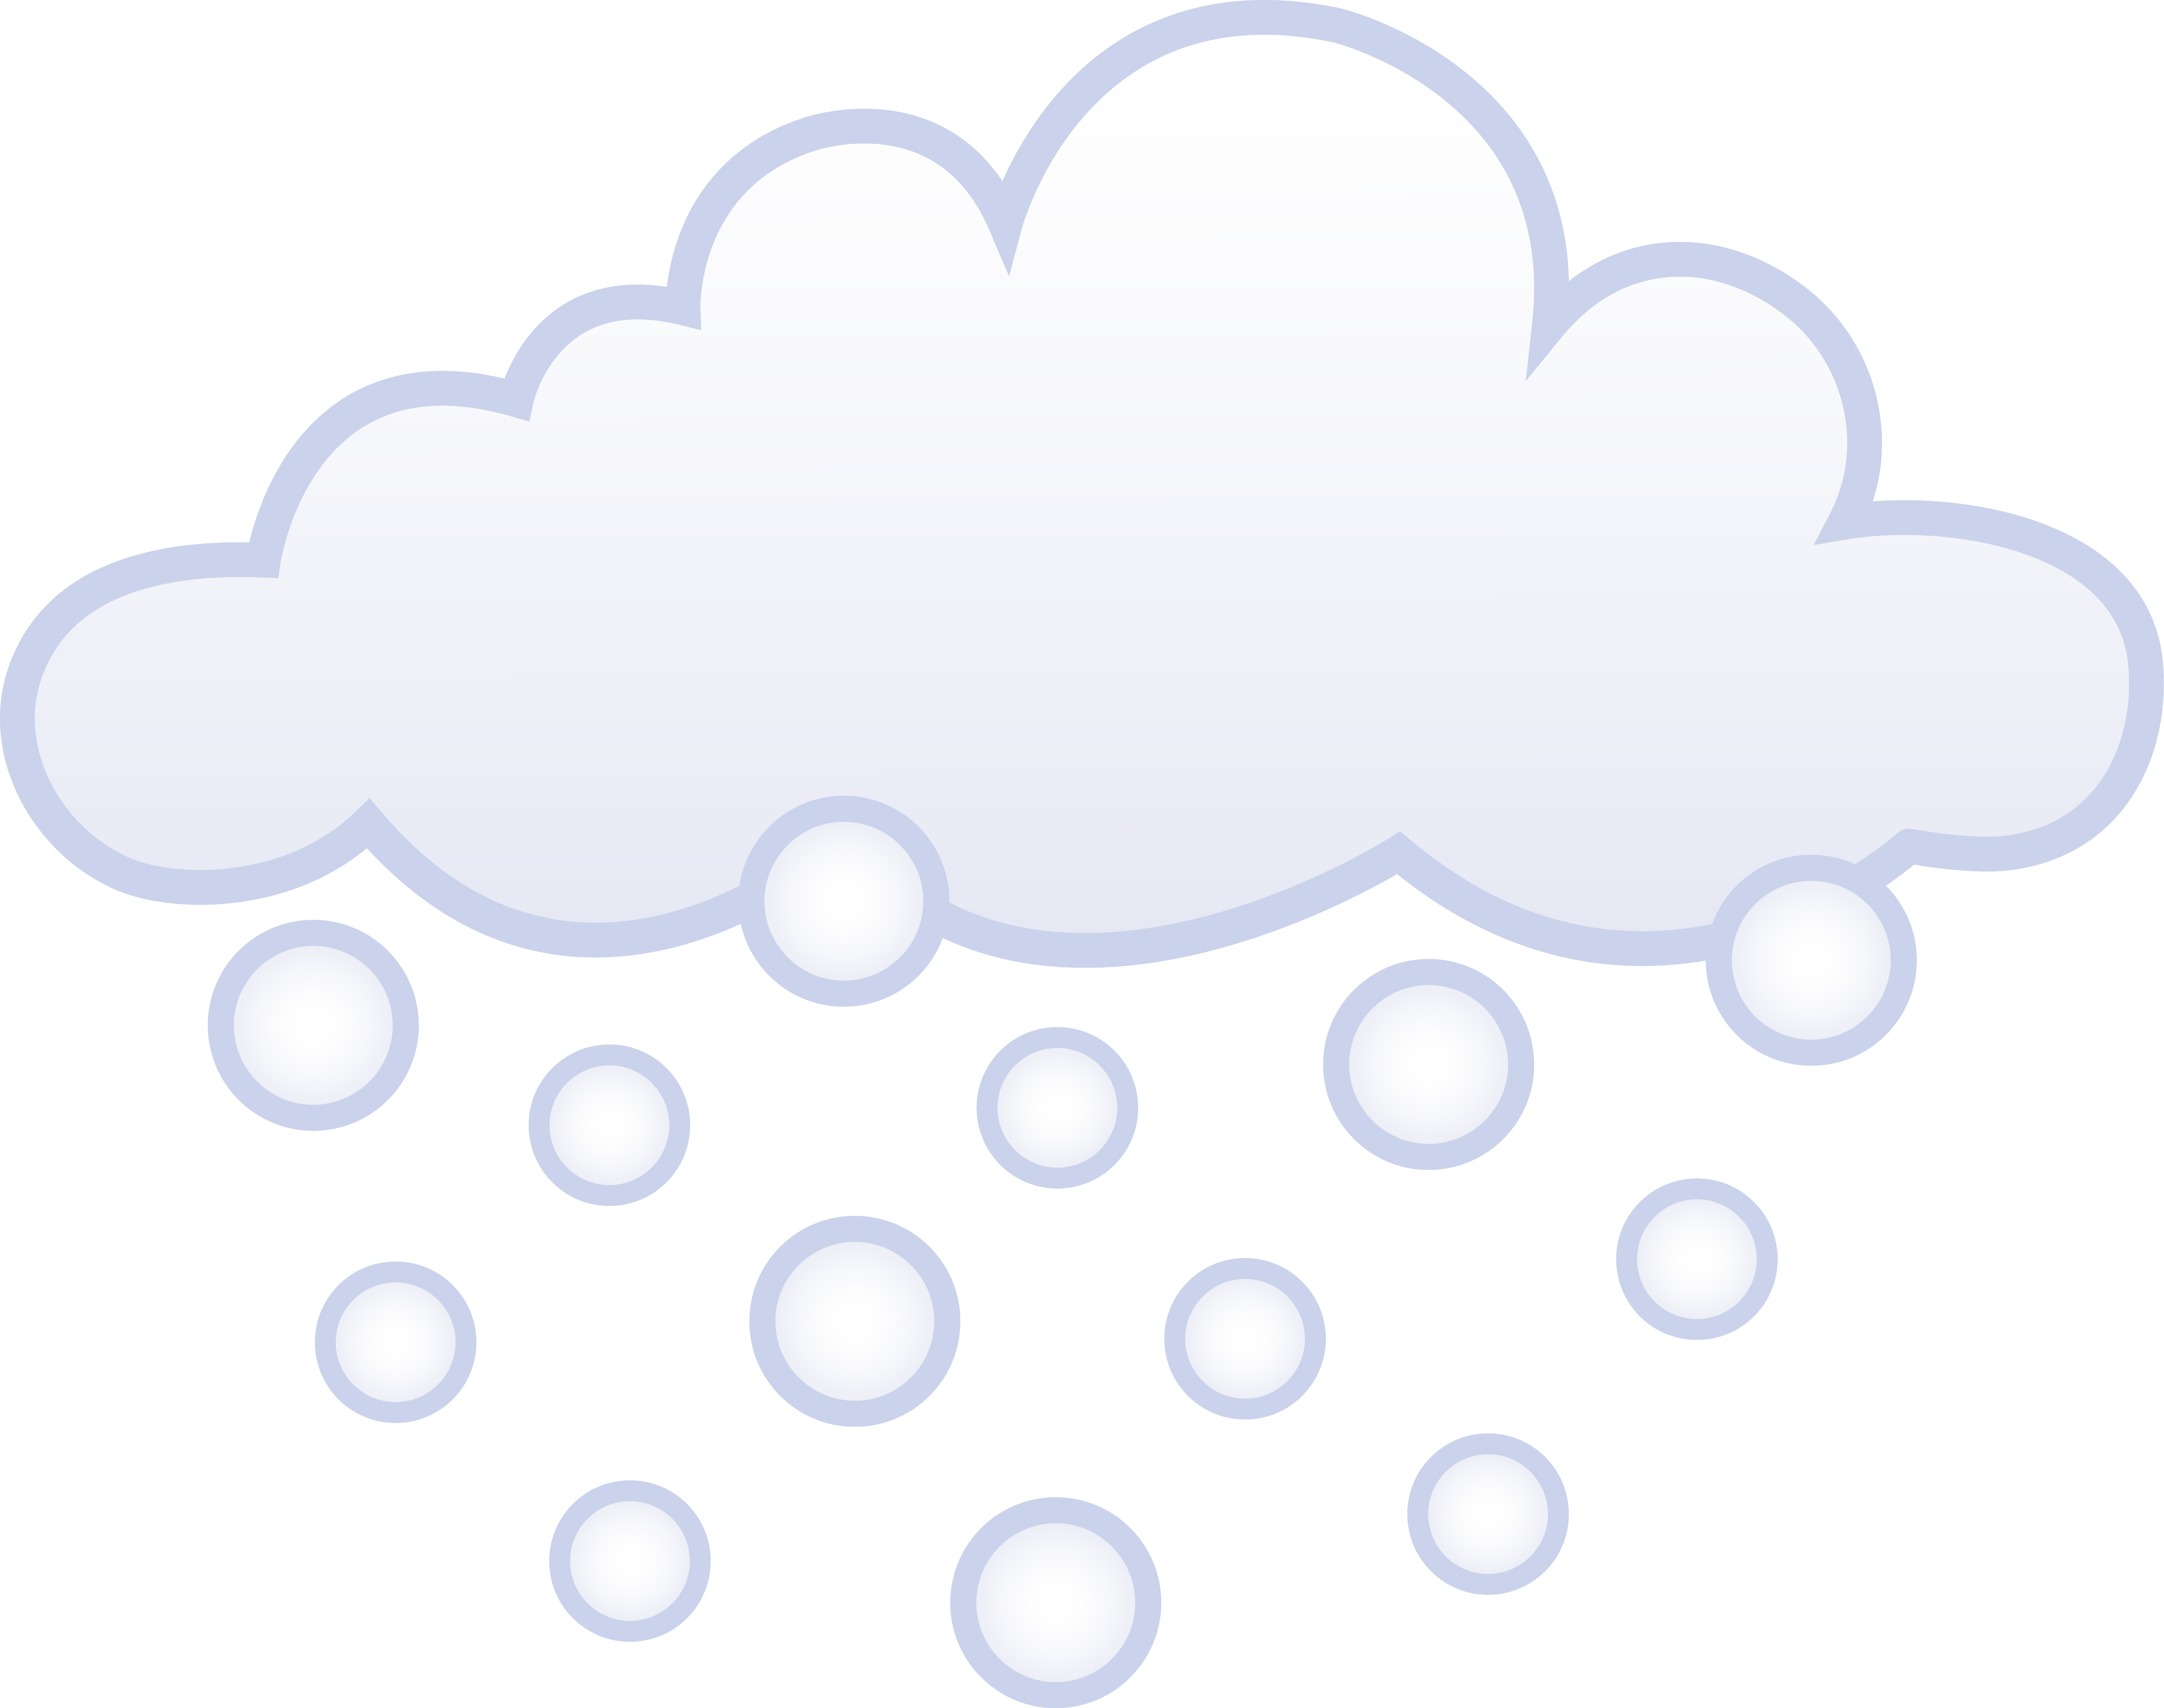 Cold clipart snowy weather Cloud White Cloud Snowing Snowing